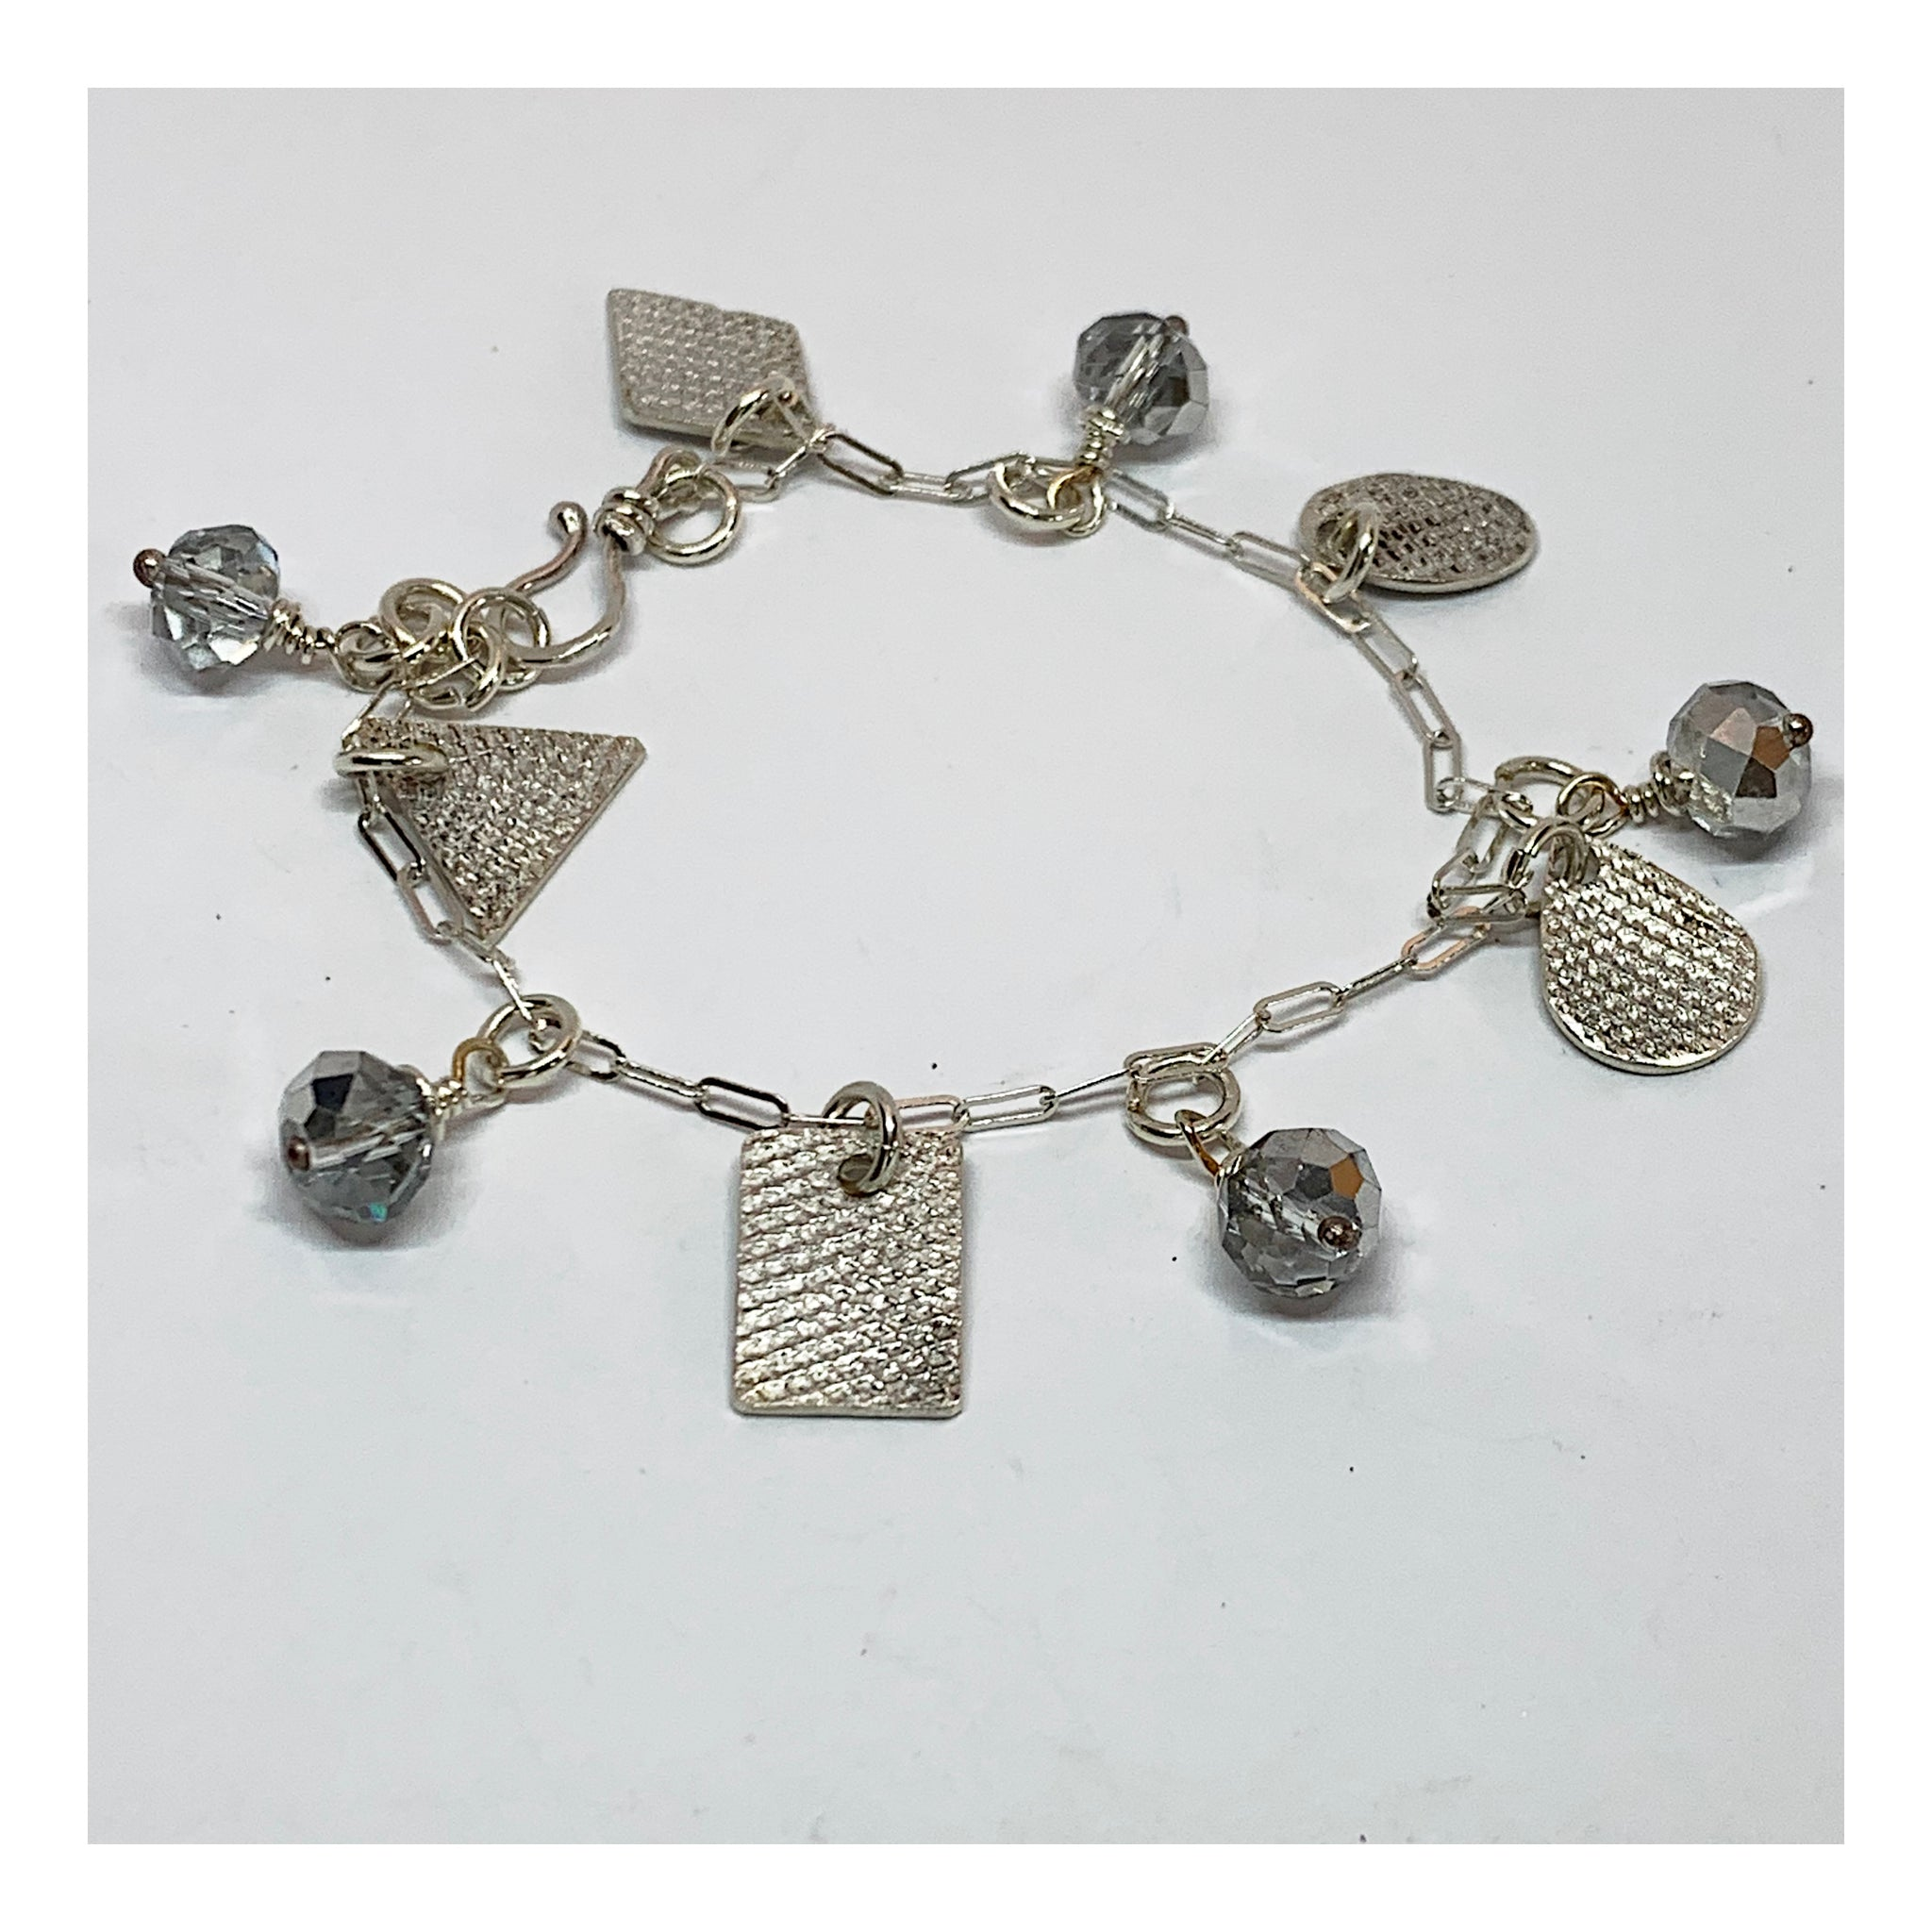 Dainty and Elegant Multiple Charms Bracelet in Sterling Silver